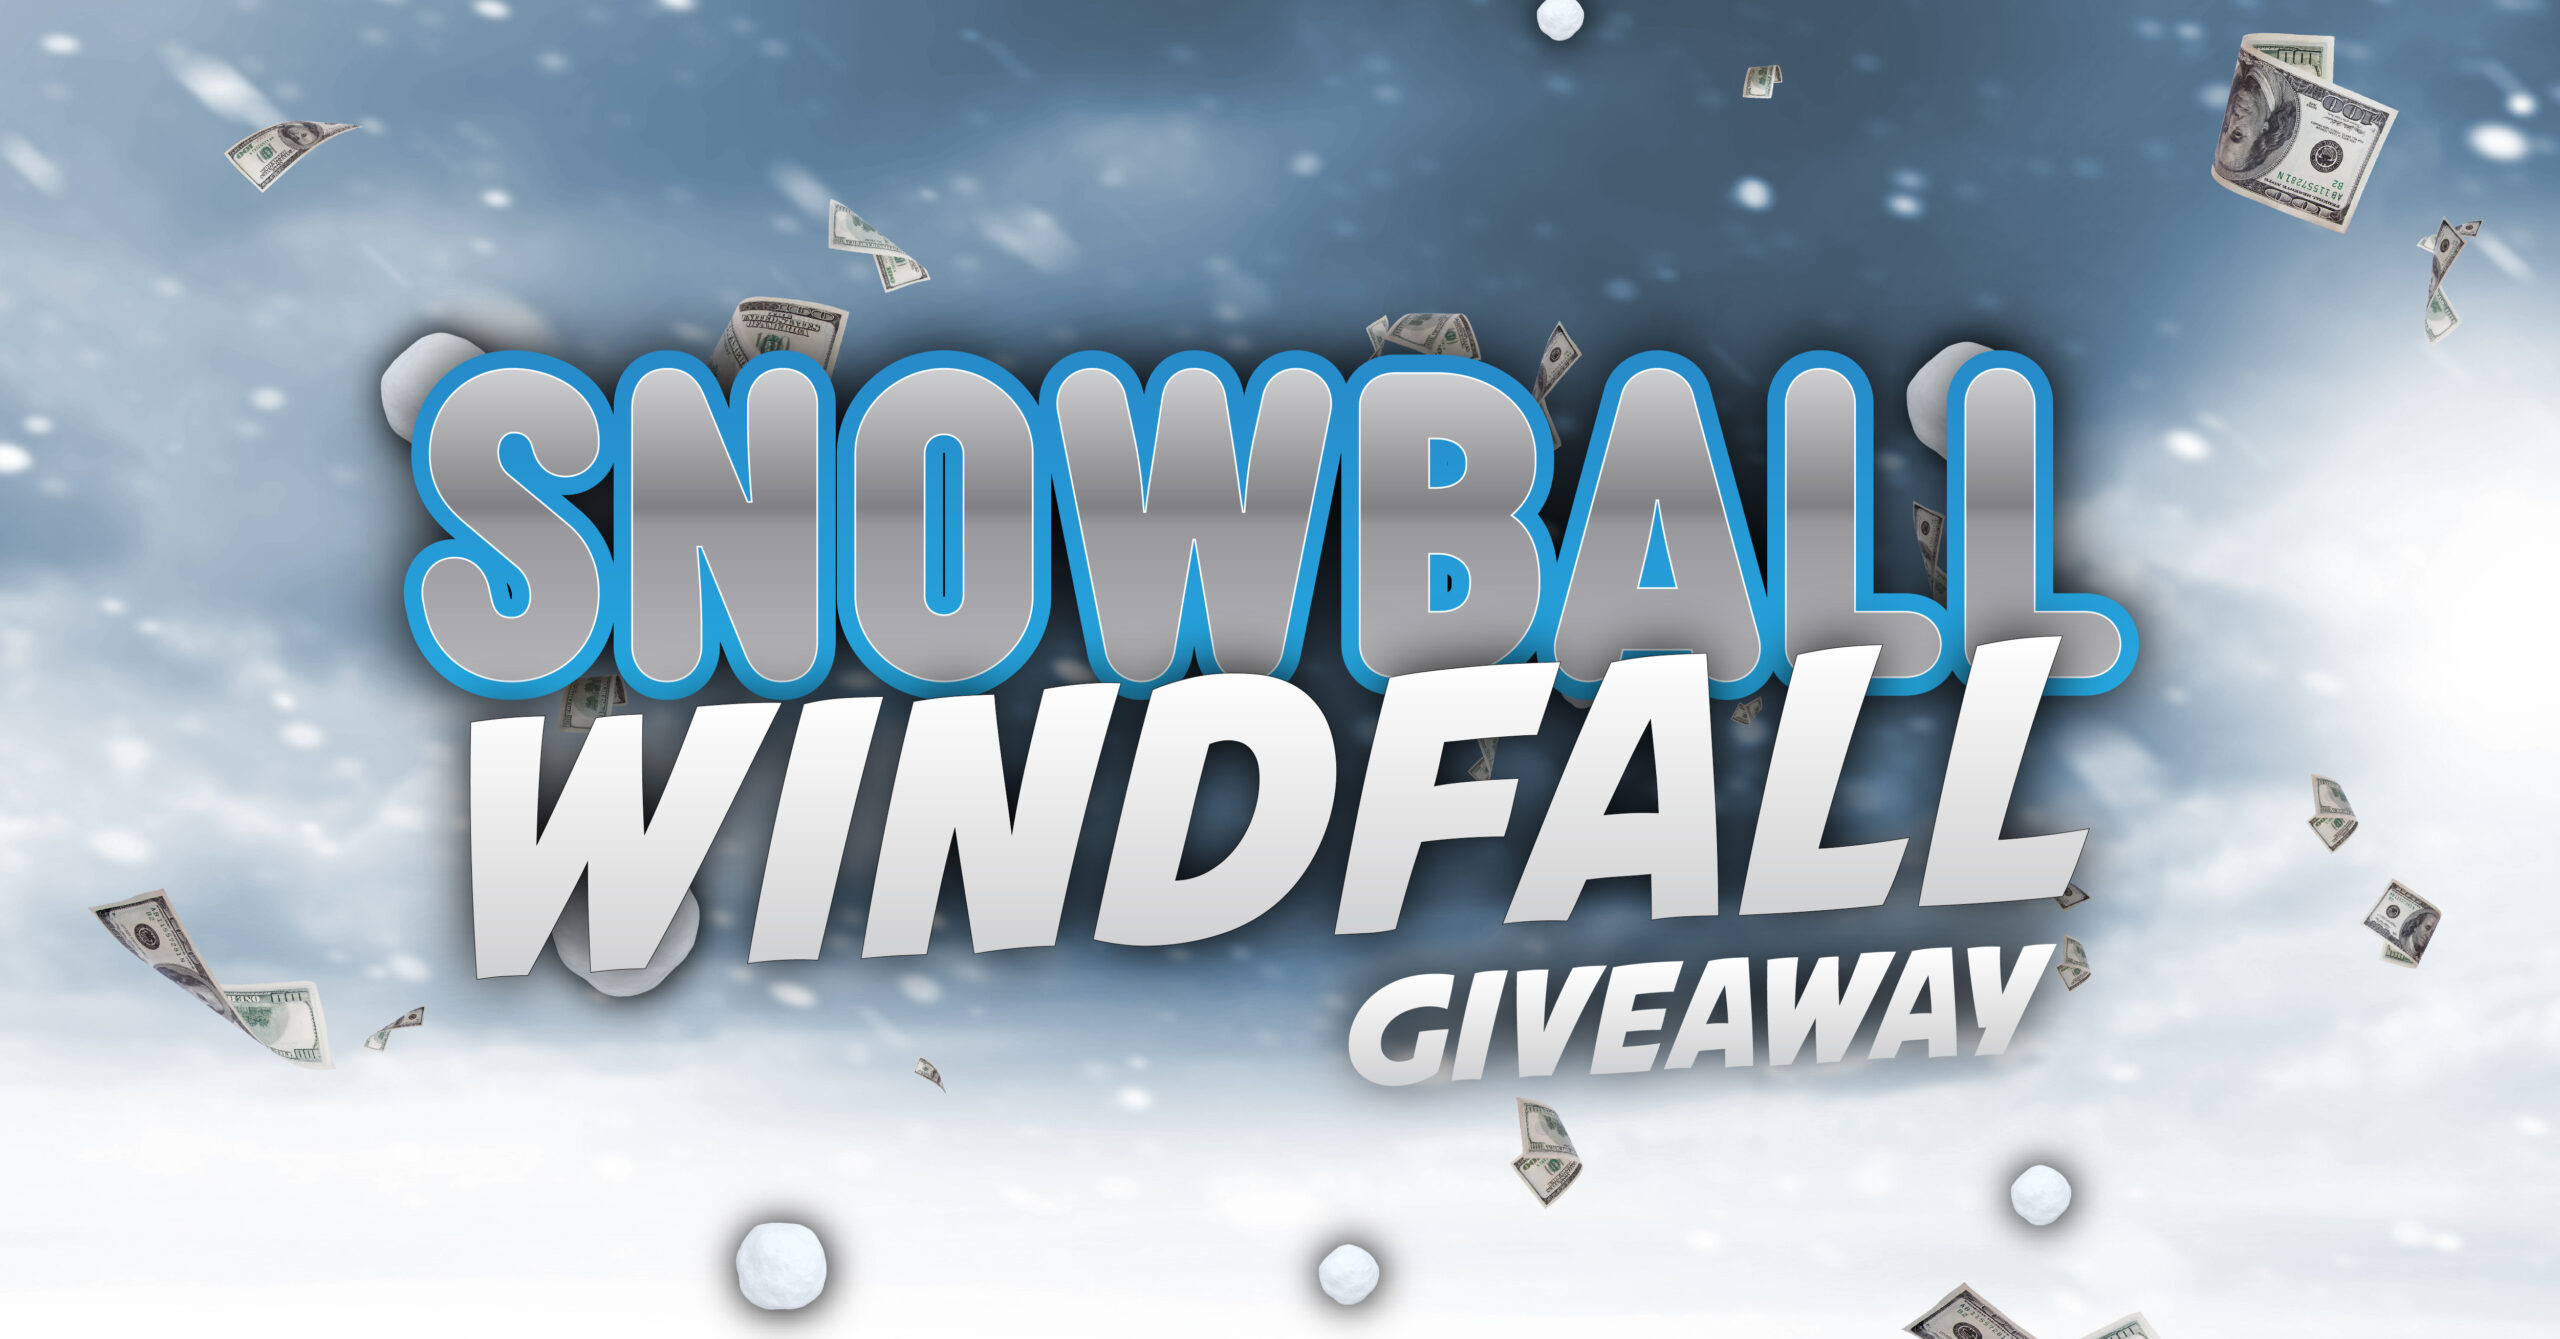 SNOWBALL WINDFALL GIVEAWAY